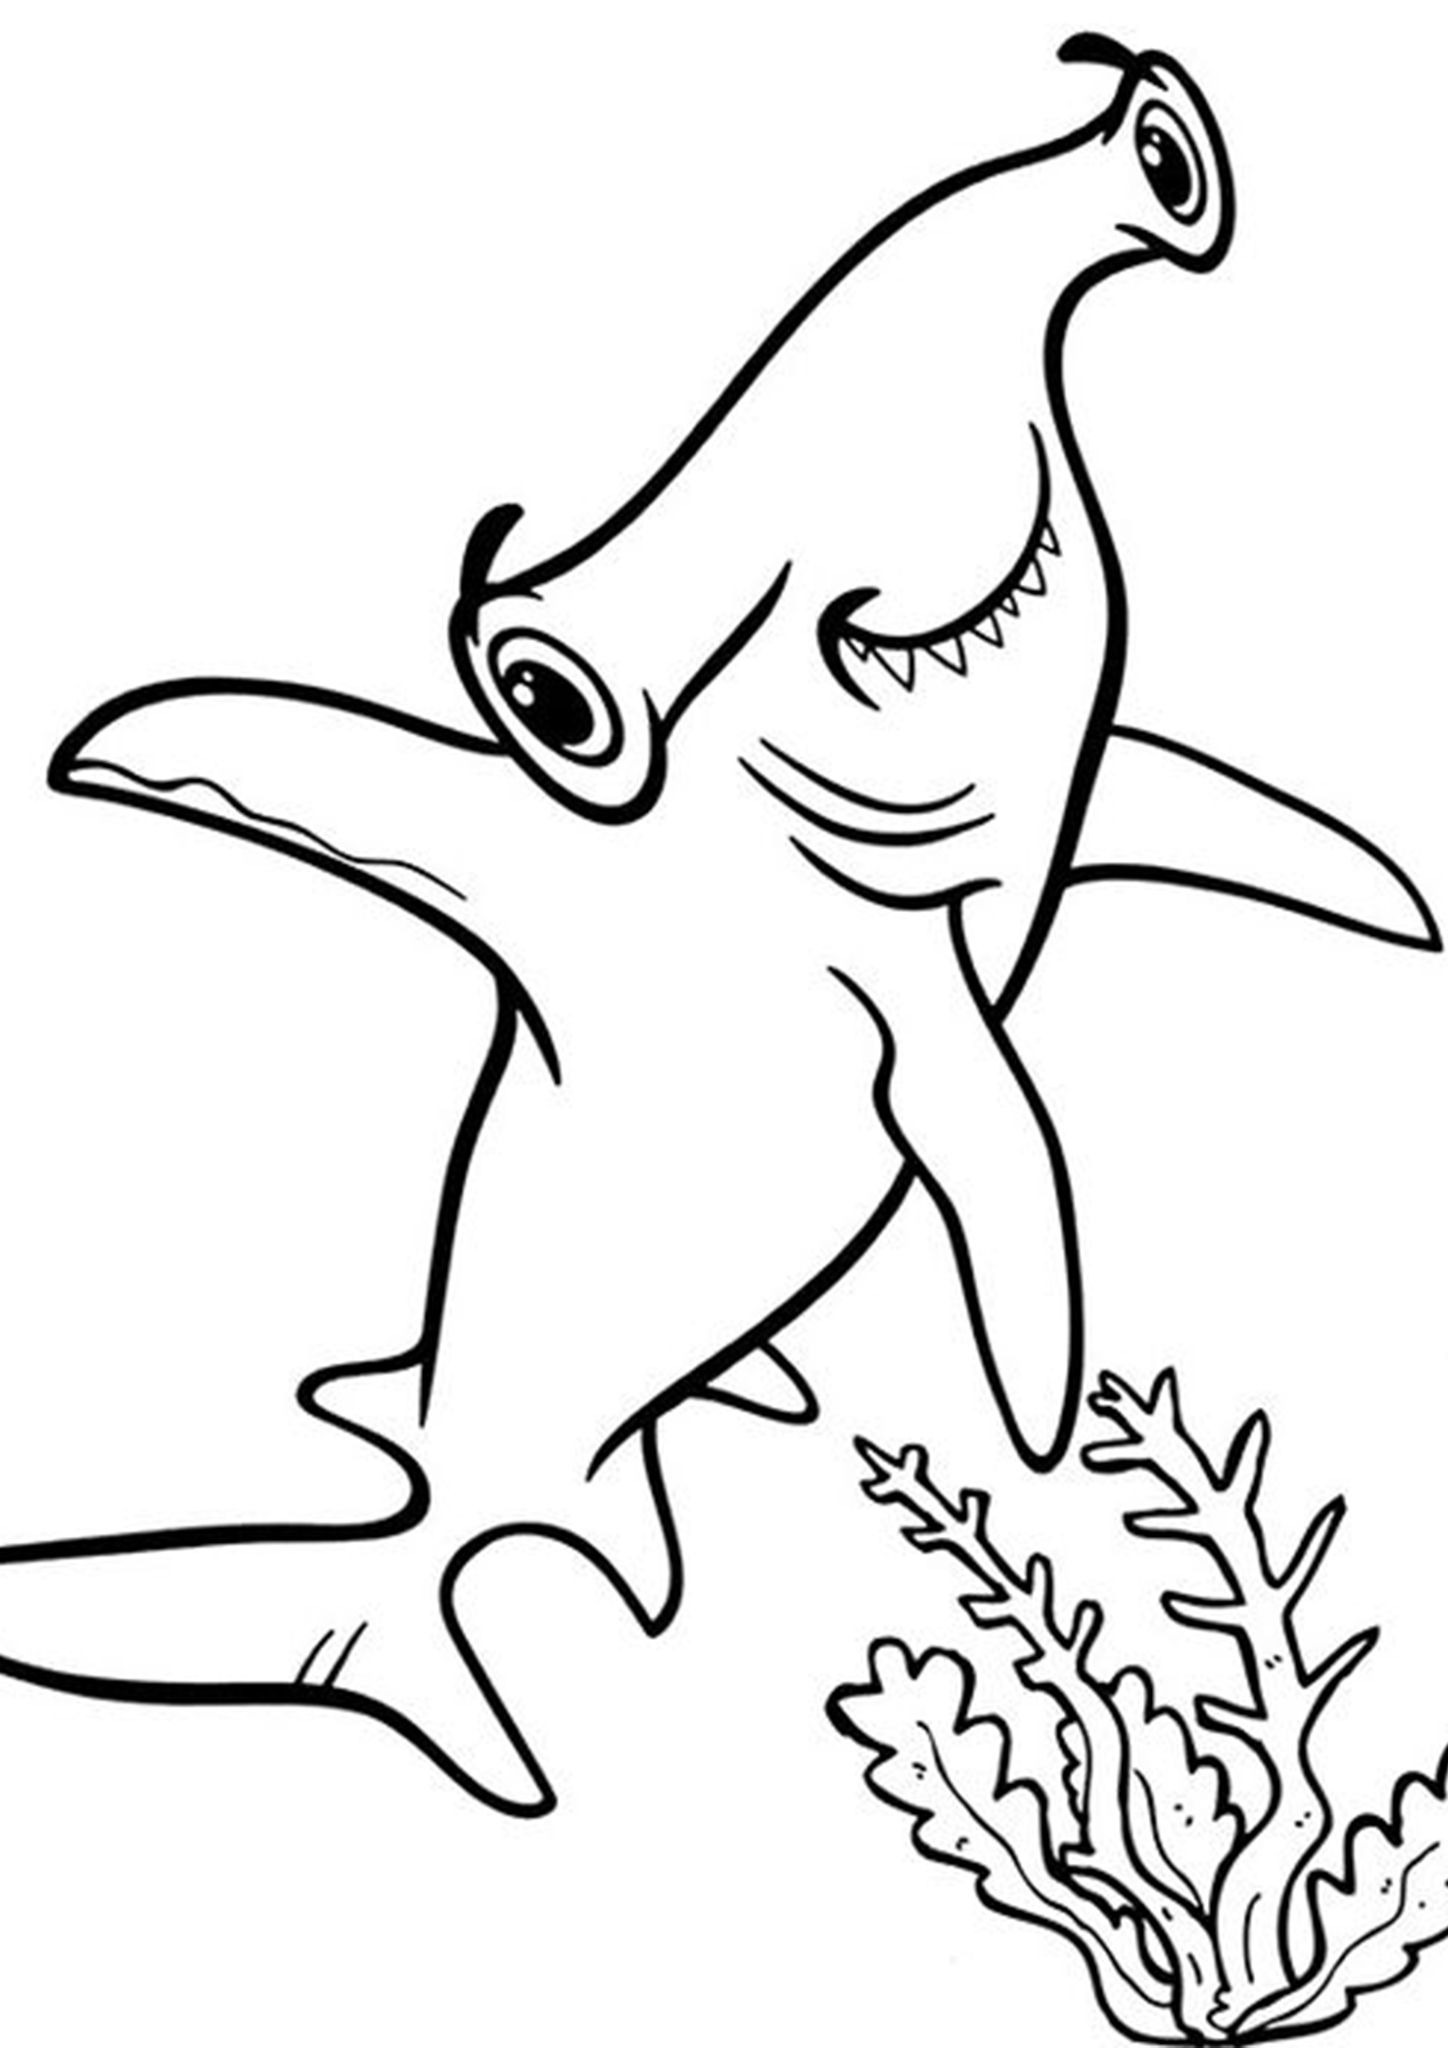 Free Easy To Print Shark Coloring Pages Shark Coloring Pages Shark Coloring Crayola Coloring Pages